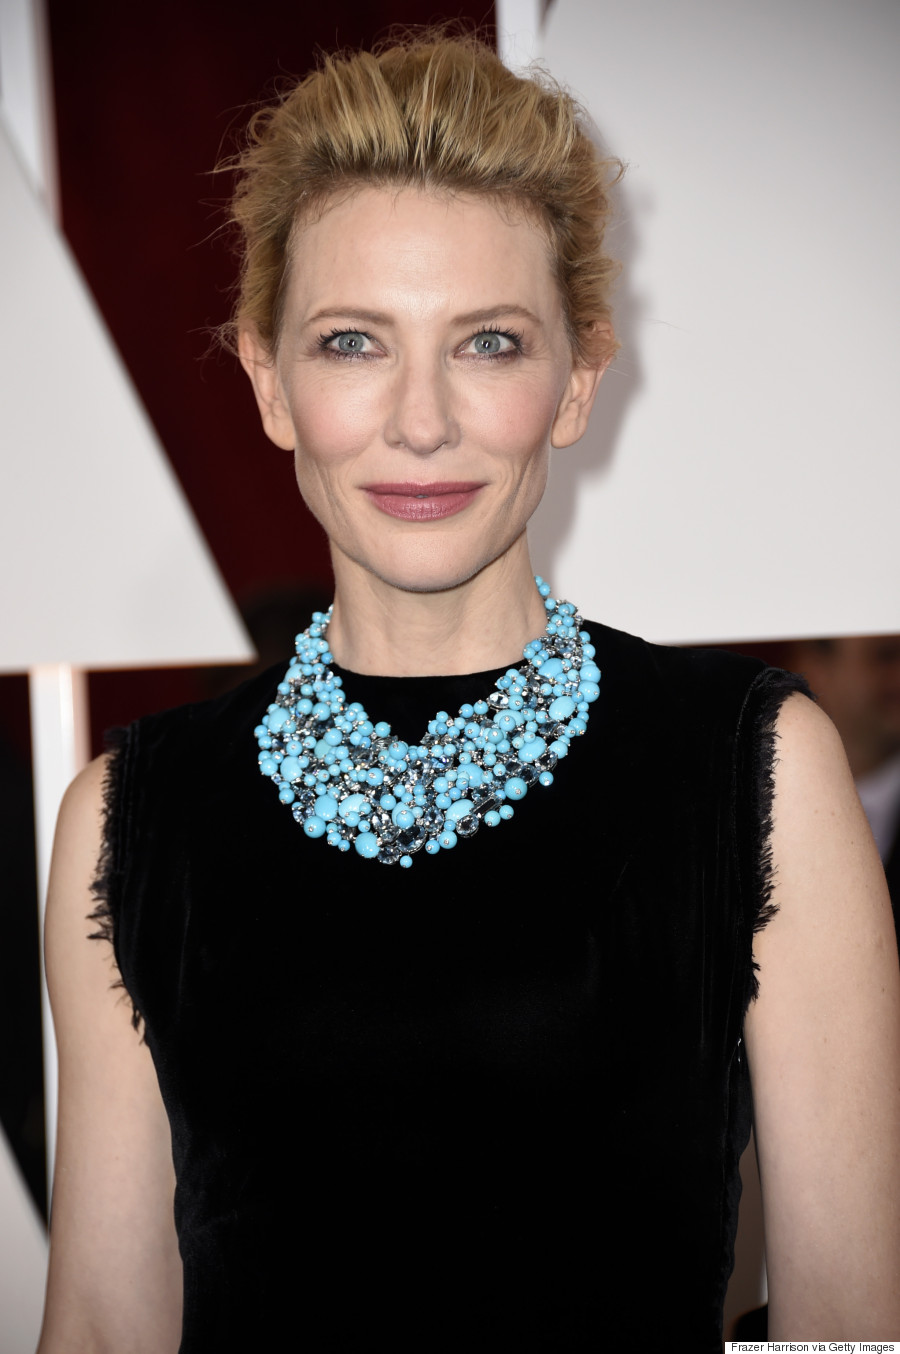 Cate Blanchett's Oscars 2015 Dress Gets Overshadowed By A ... Cate Blanchett